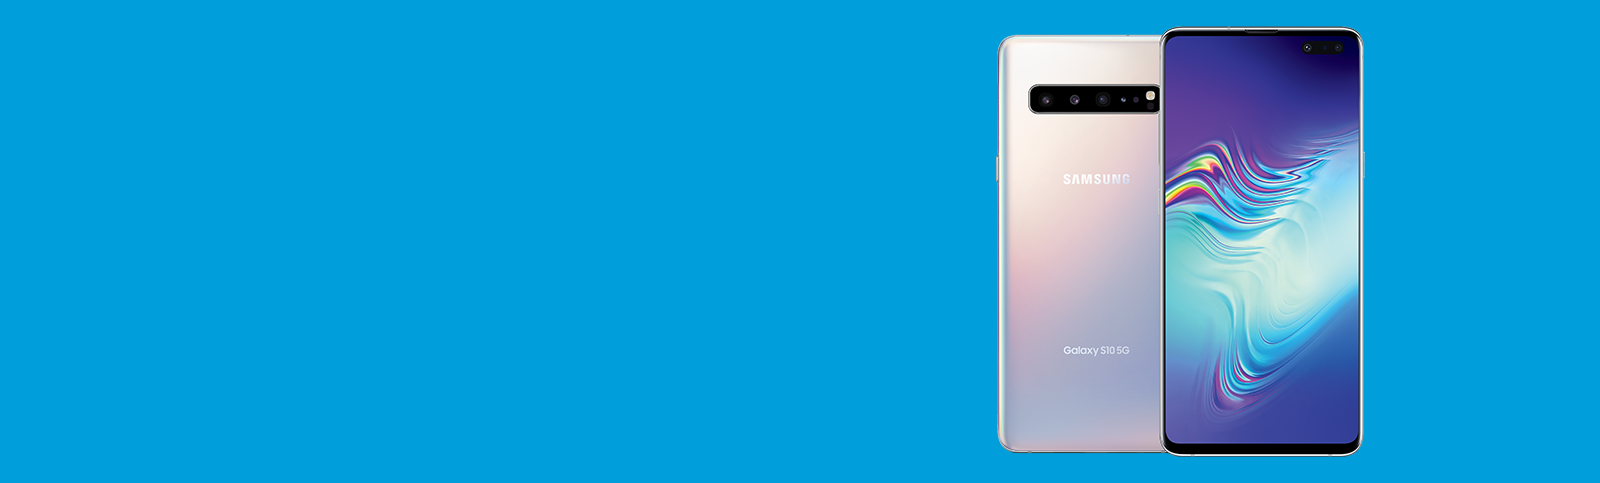 AT&T Launches 5G Handset with Samsung Galaxy S10 5G